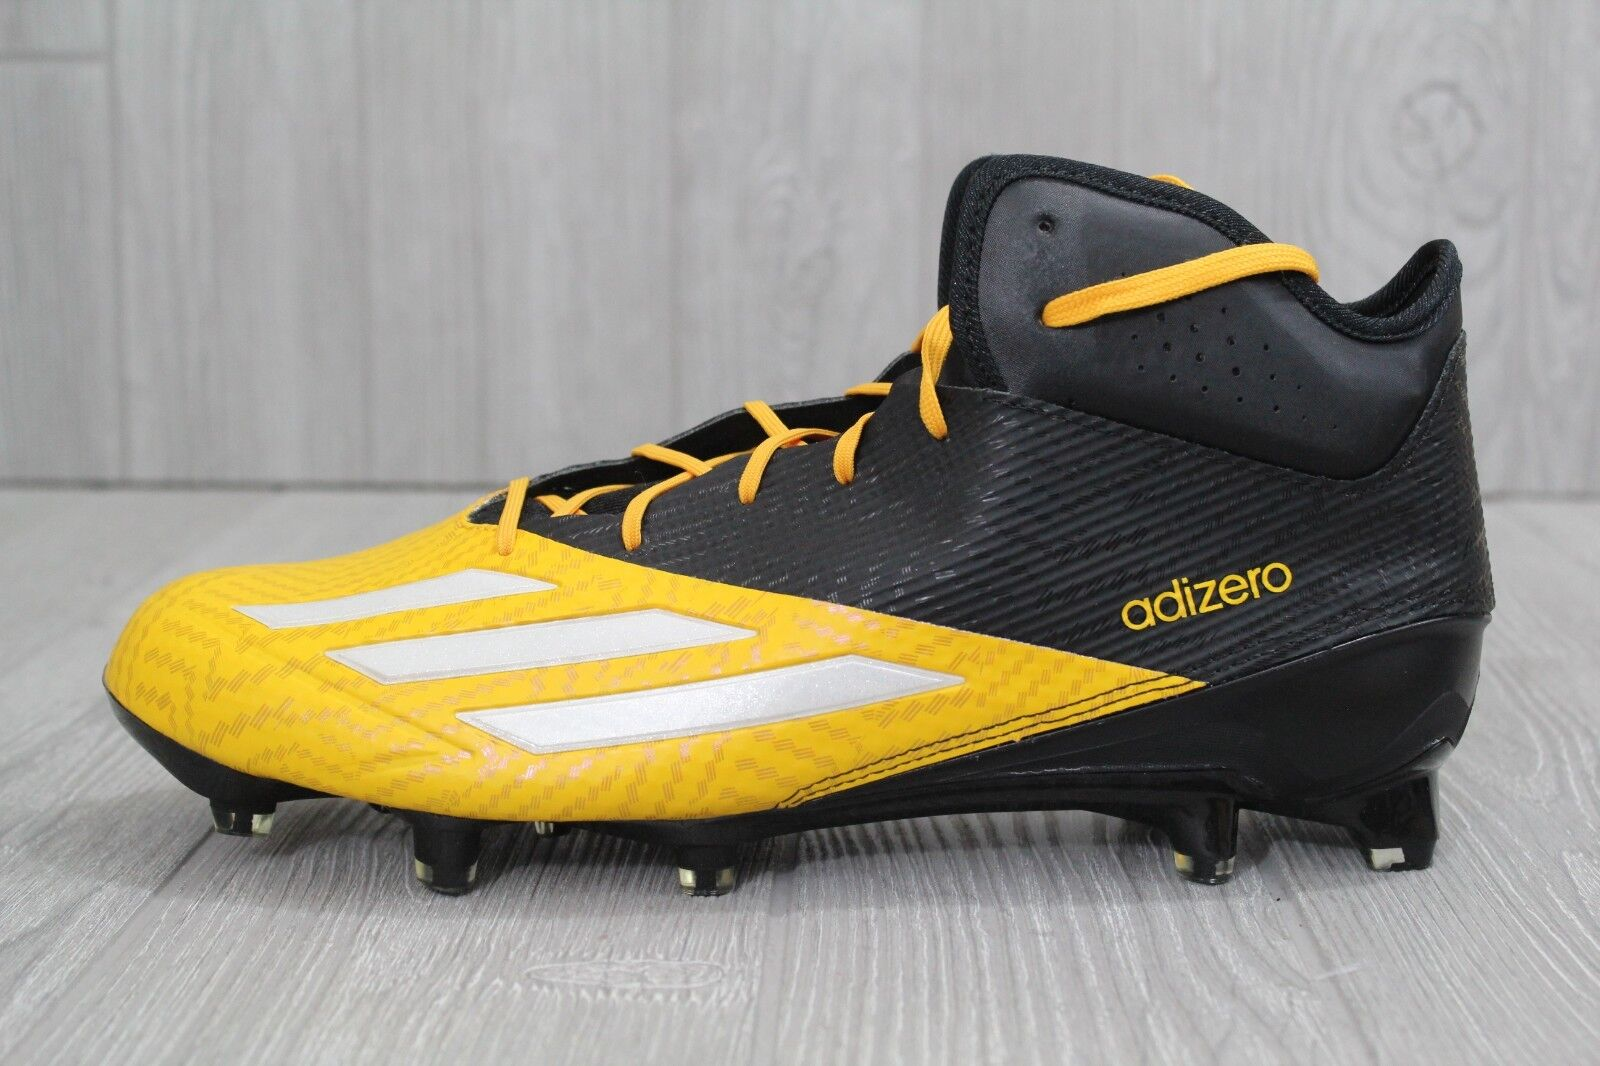 29 Adidas Adizero 5 Star 5.0 Mens Football Lacrosse Cleats Q16077 Yellow US 11.5